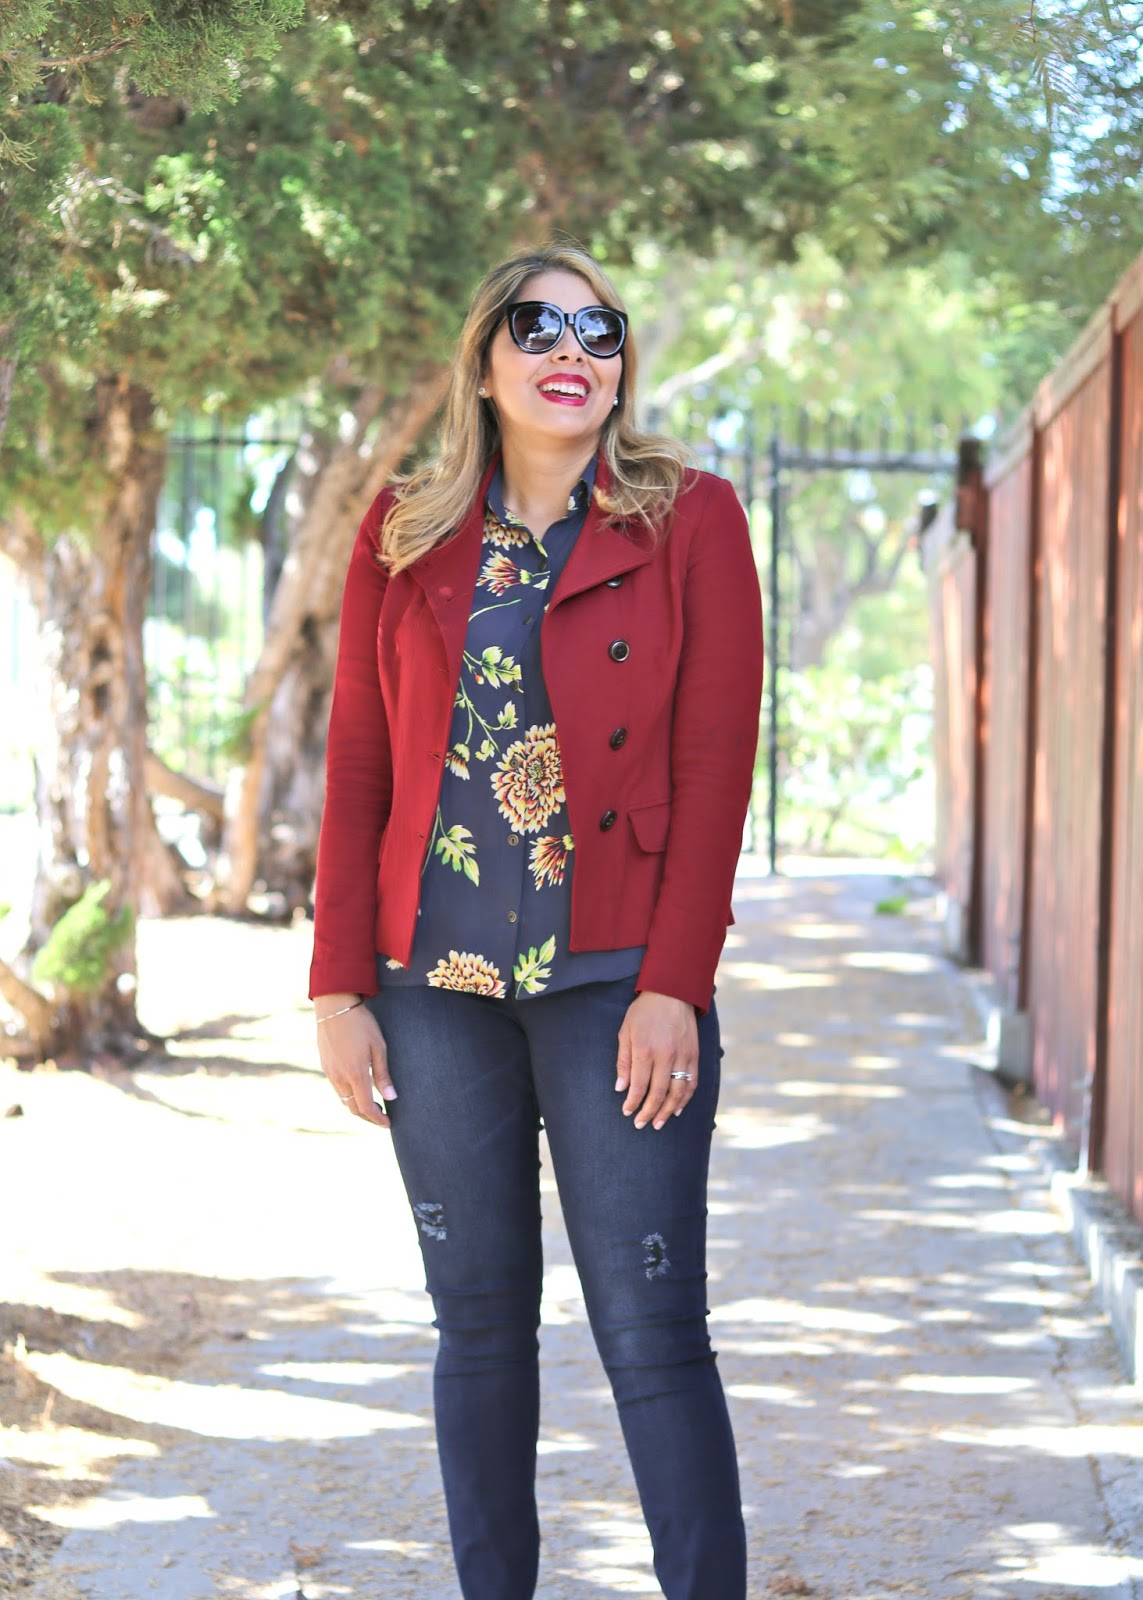 real women fashion, mexican fashion blogger, fall florals 2016, blazer and jeans outfit